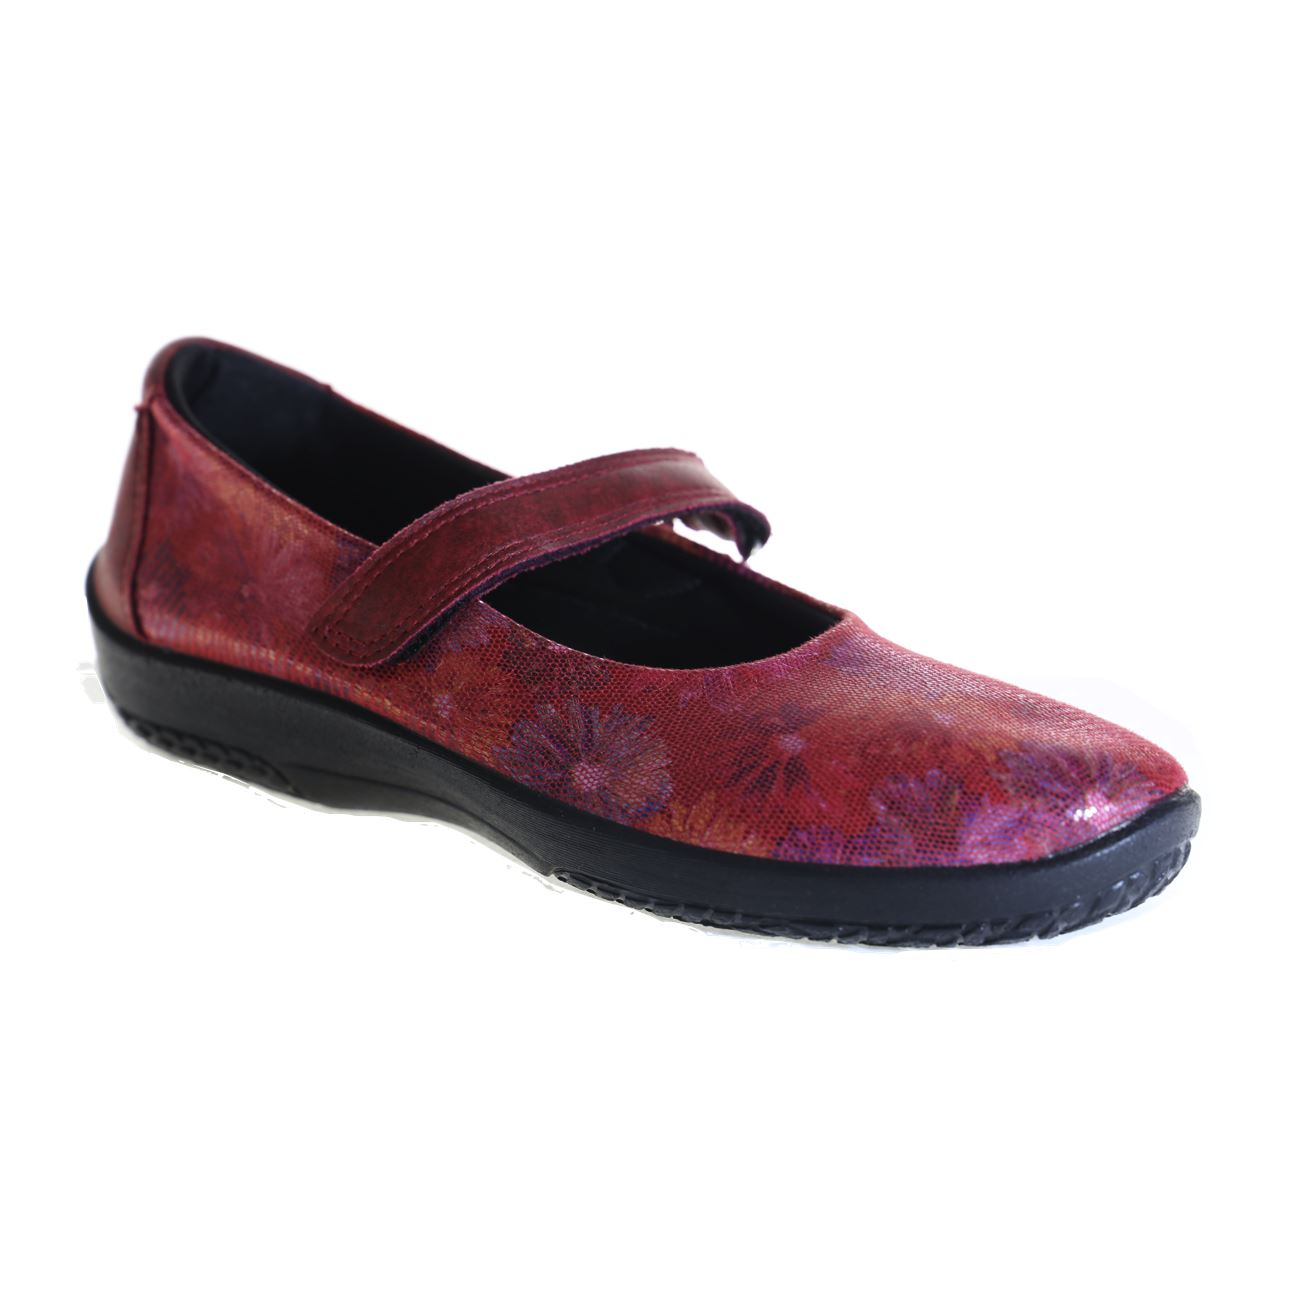 Arcopedico, L45 Floral, Lytech, Red Shoes Arcopedico Red 35